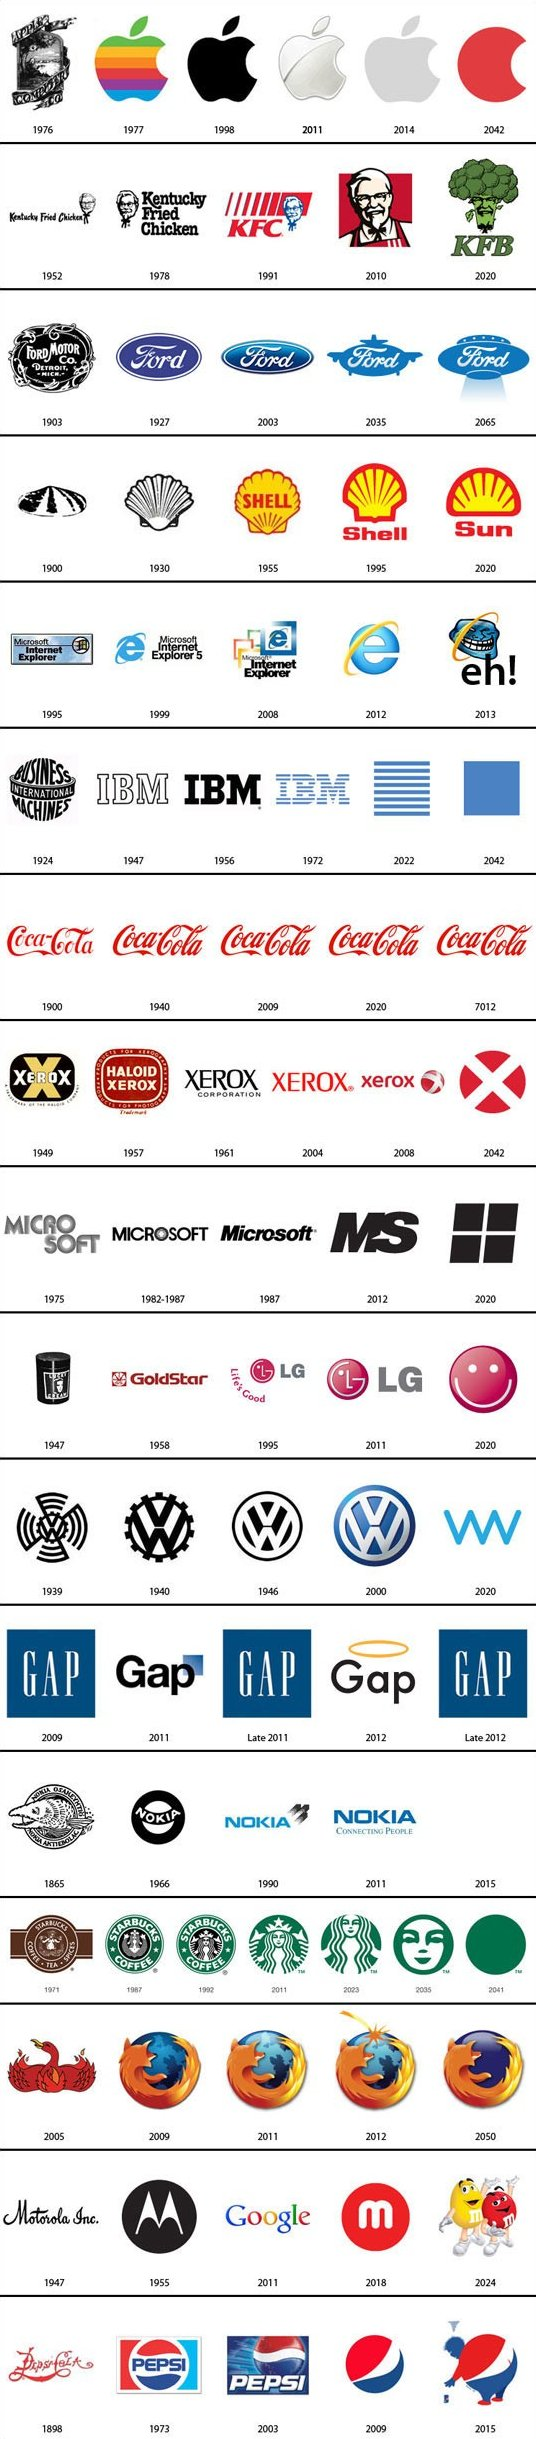 The Past and Future of Famous Logos